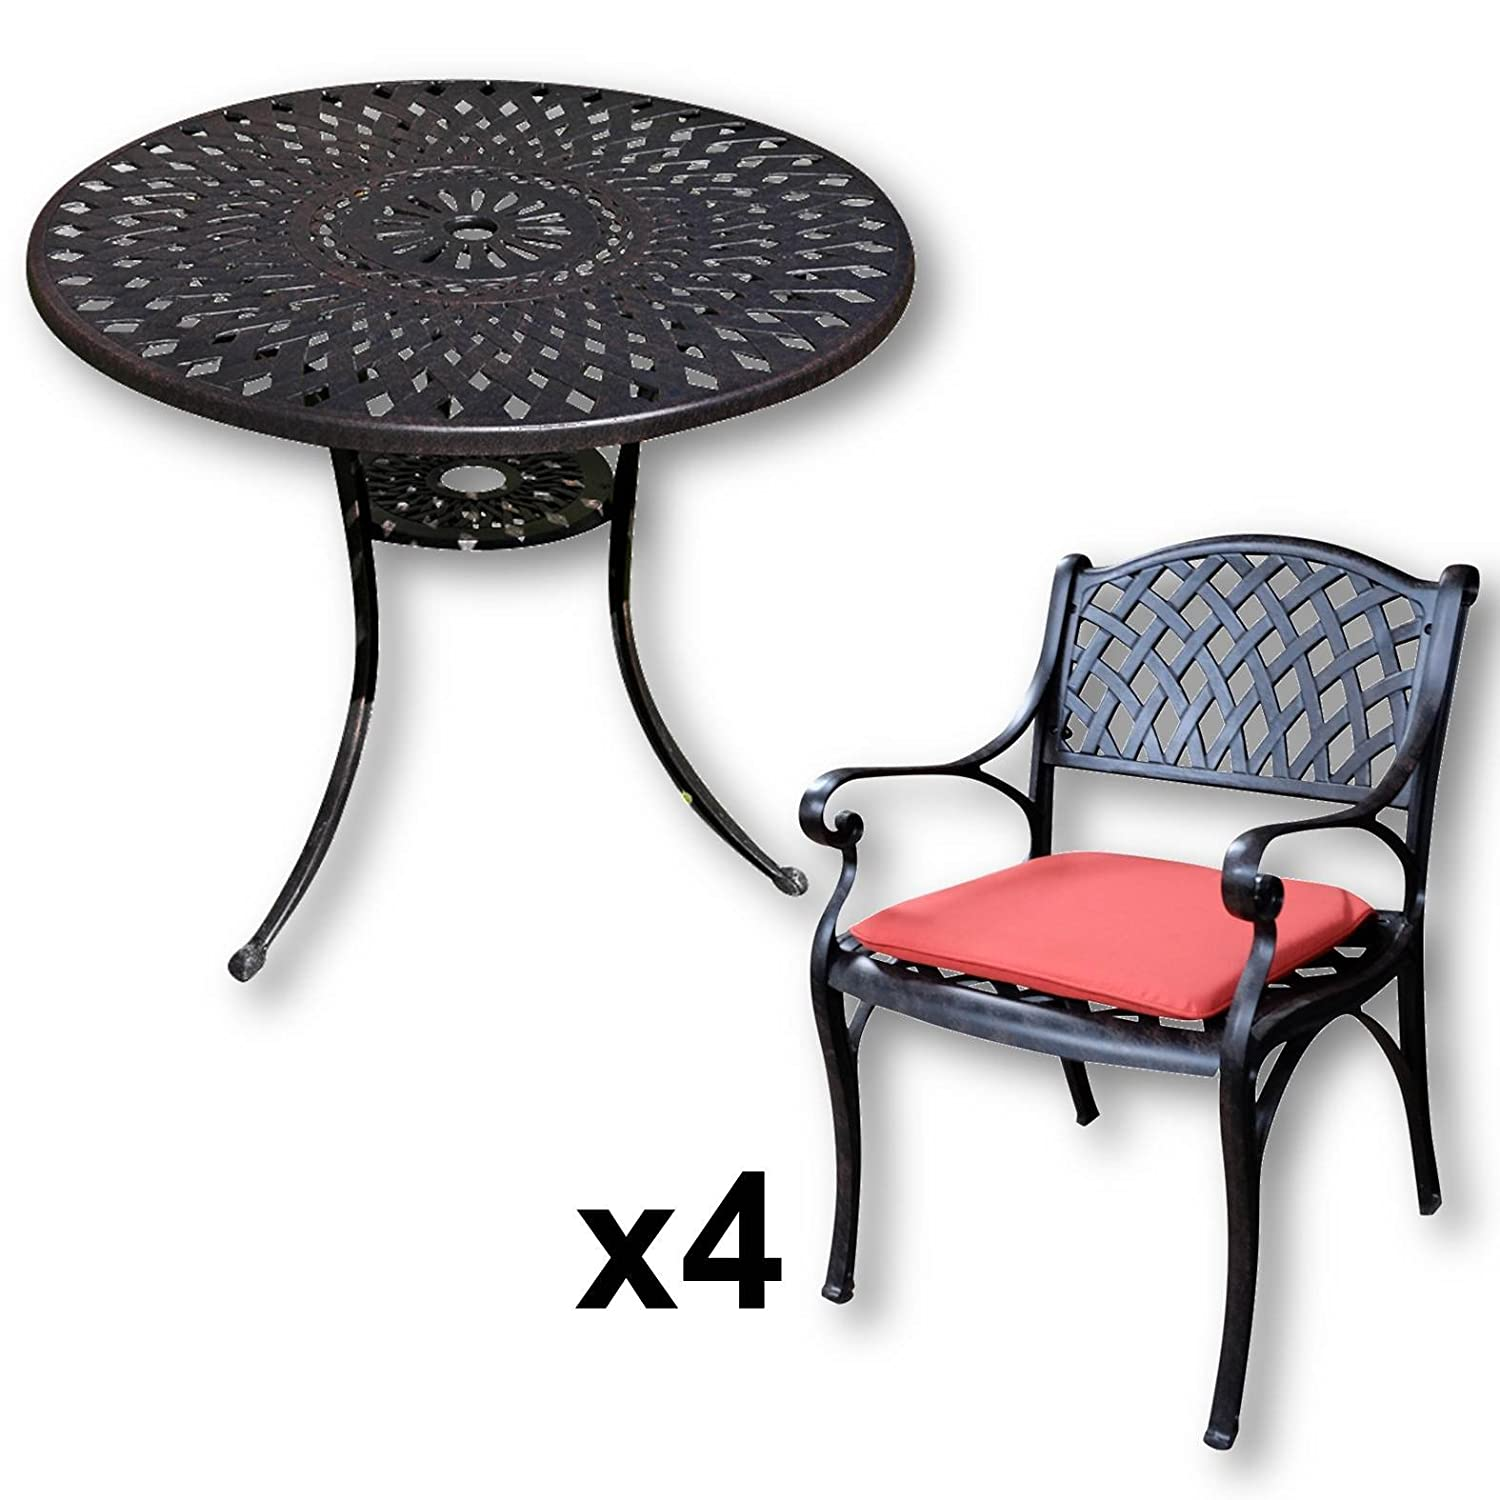 lazy susan mia 90 cm runder gartentisch mit 4 st hlen gartenm bel set aus metall antik. Black Bedroom Furniture Sets. Home Design Ideas